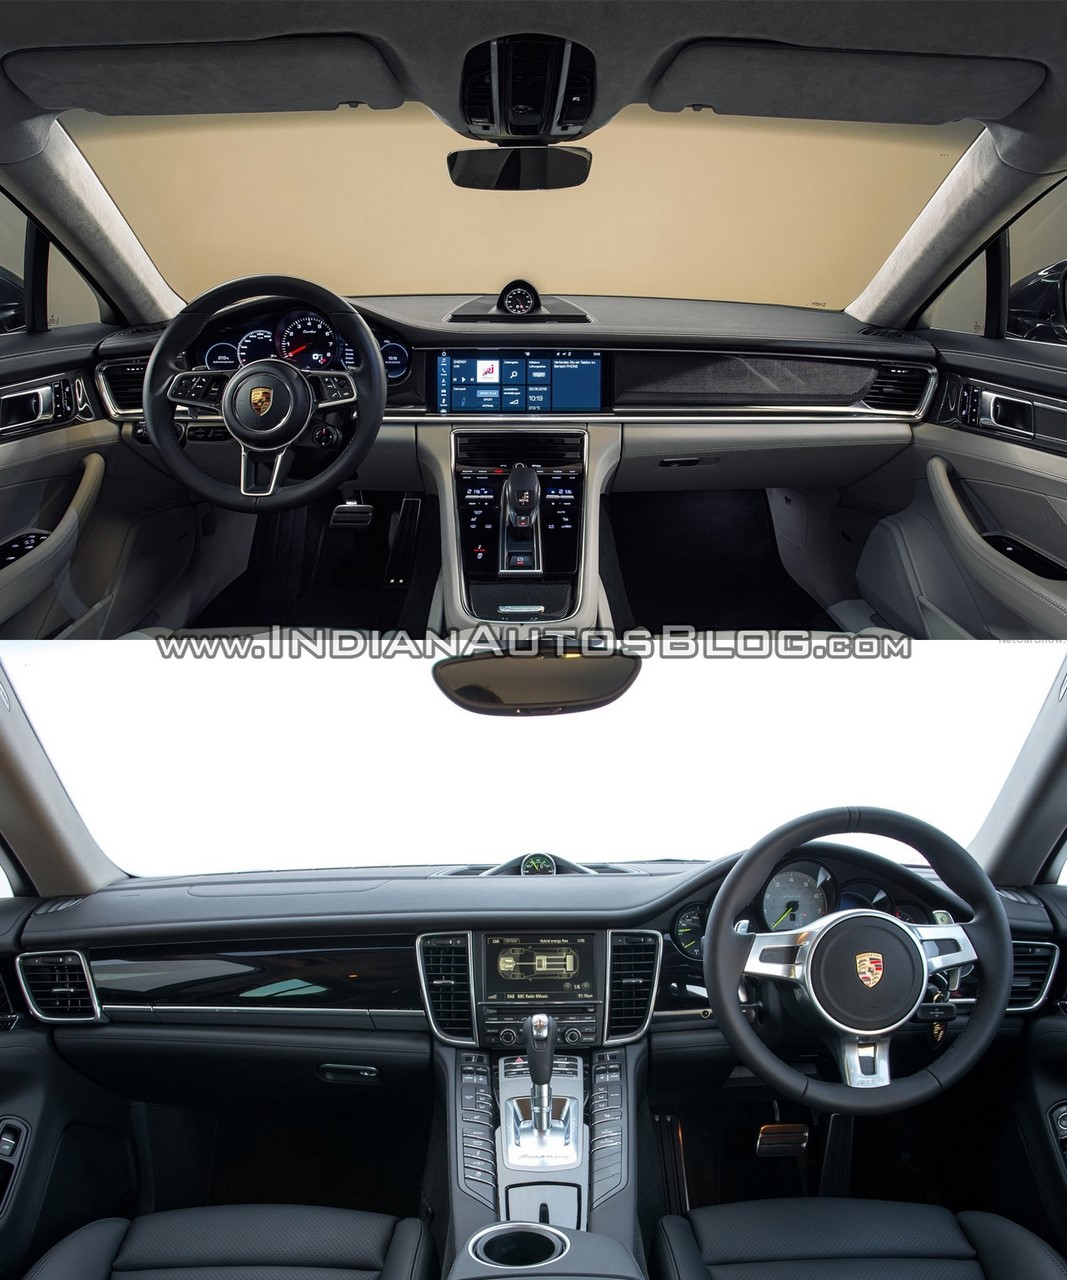 2017 Porsche Panamera Vs 2014 Interior Dashboard